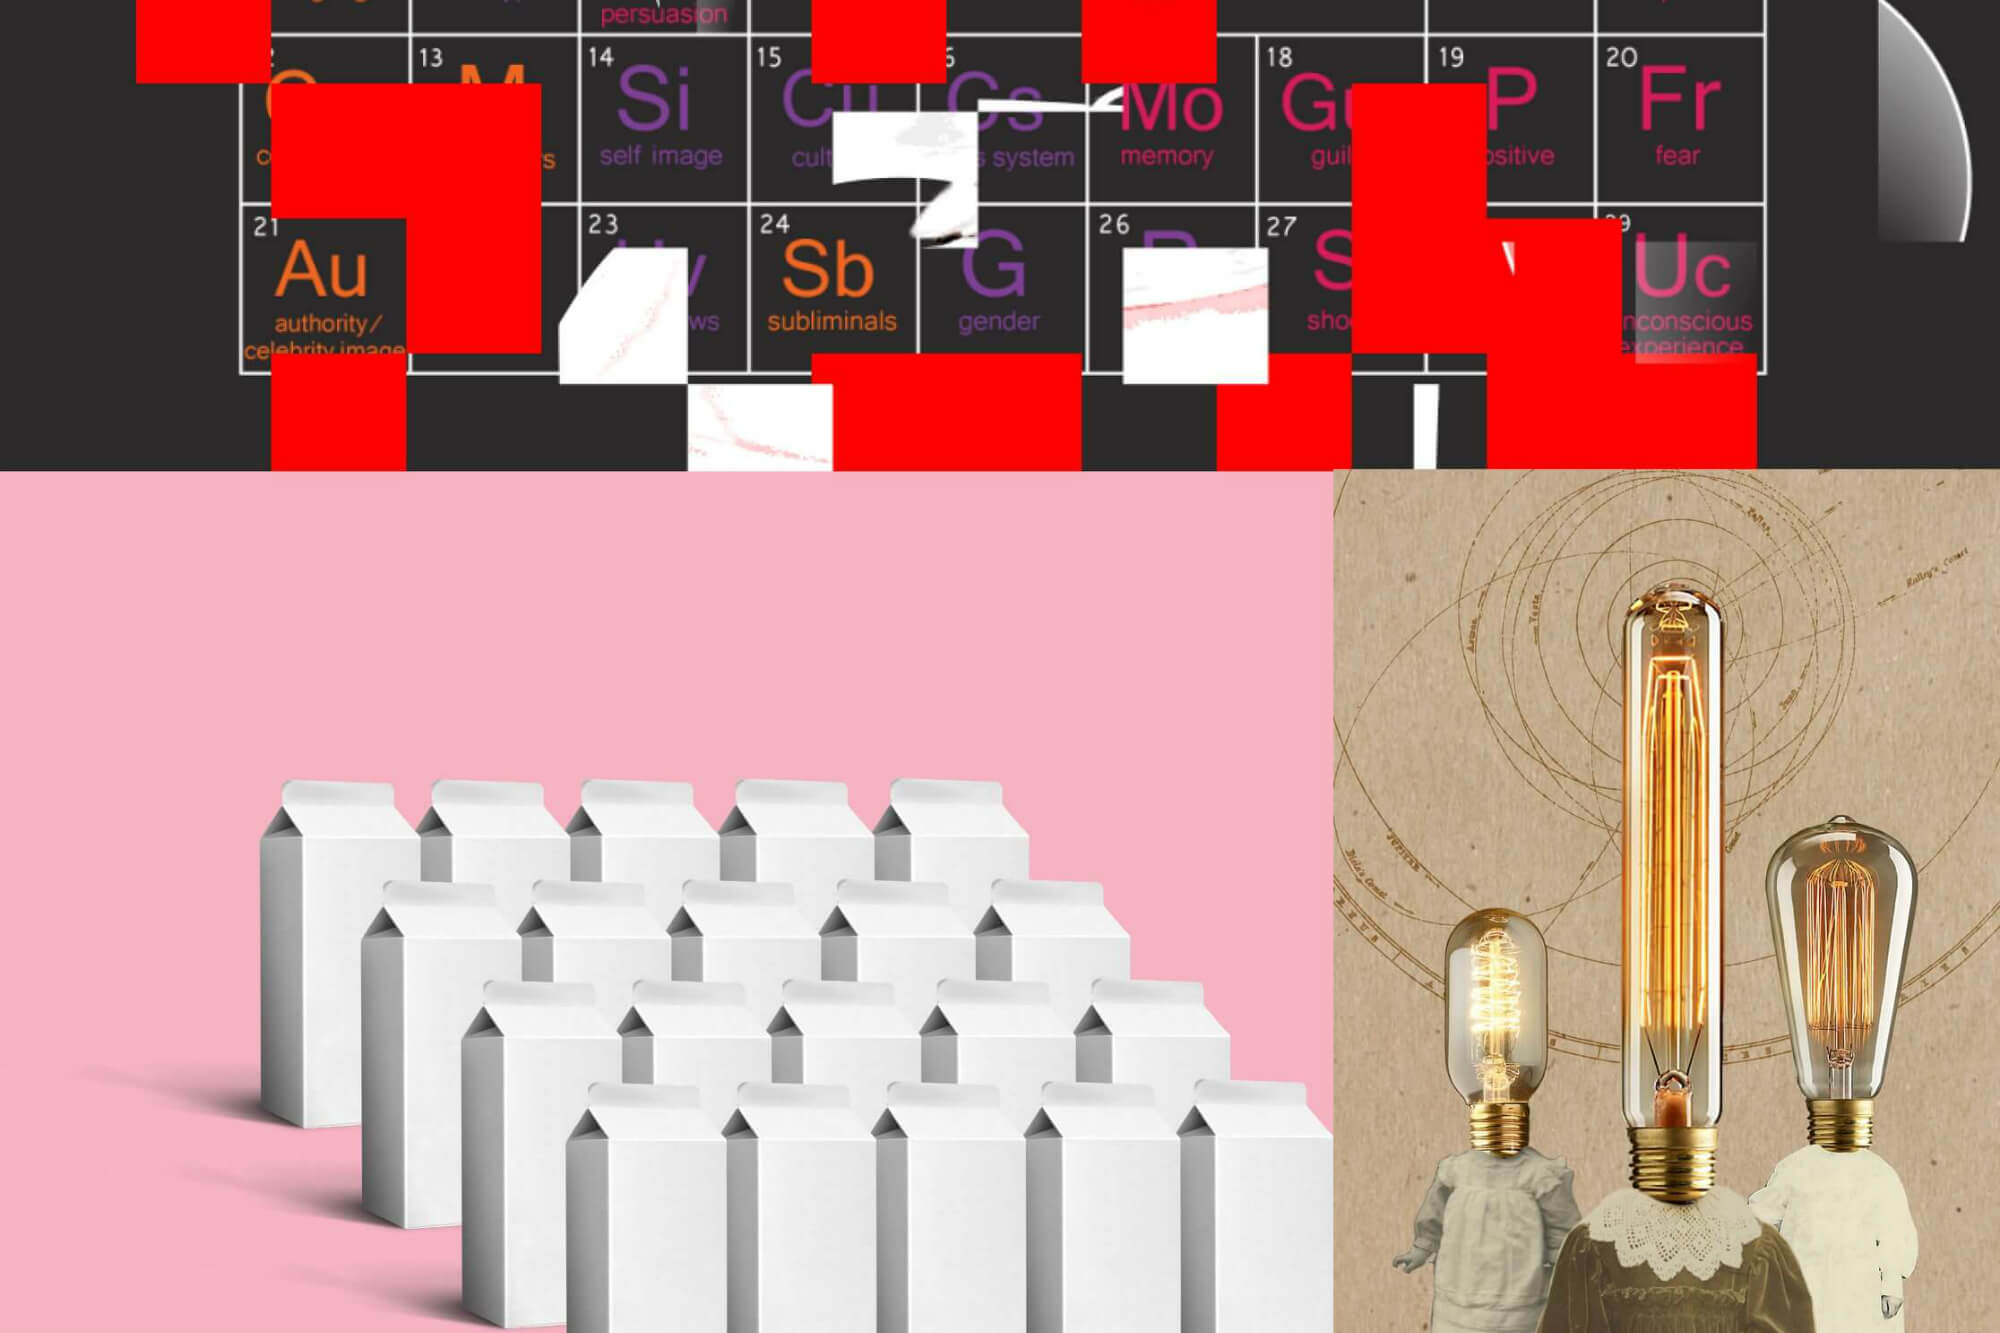 Computer illustrations of the periodic table, milk carton designs and an abstract lightbulb image